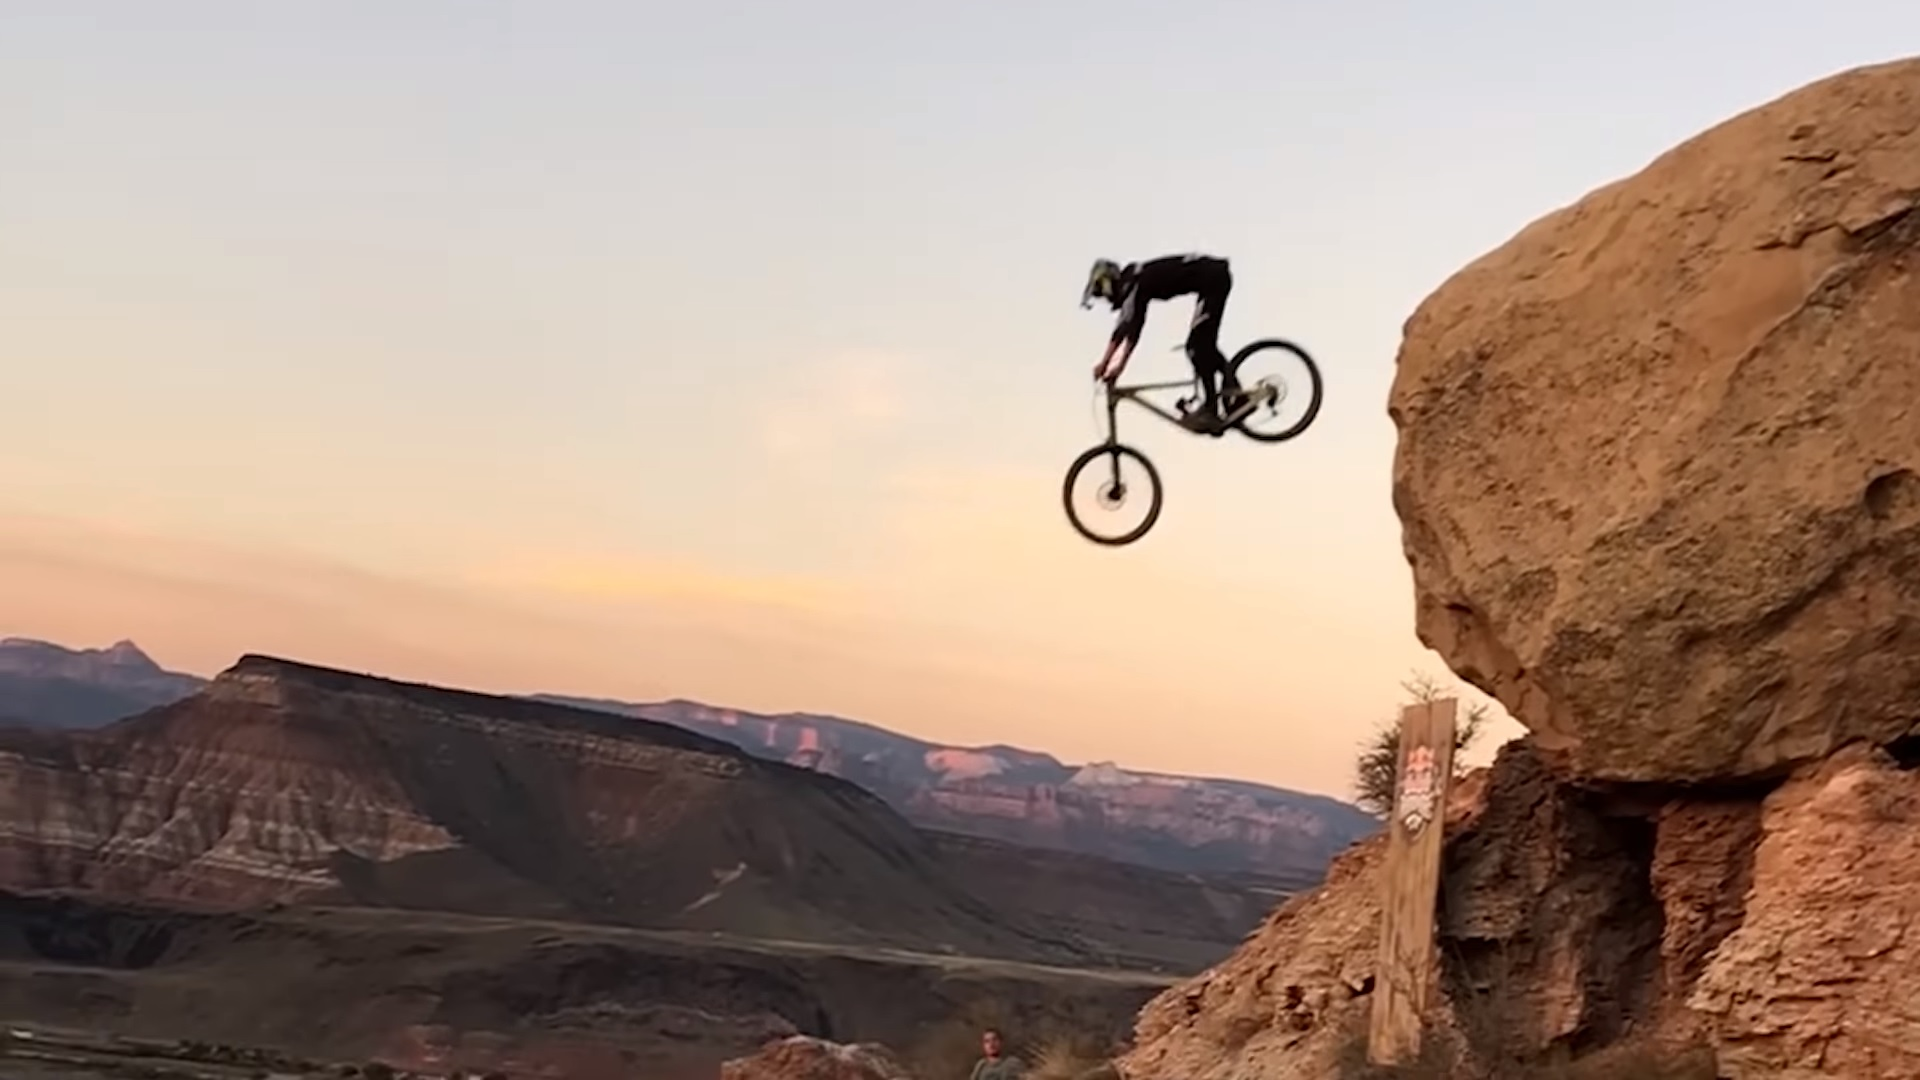 A Day at Rampage with Brendan Fairclough